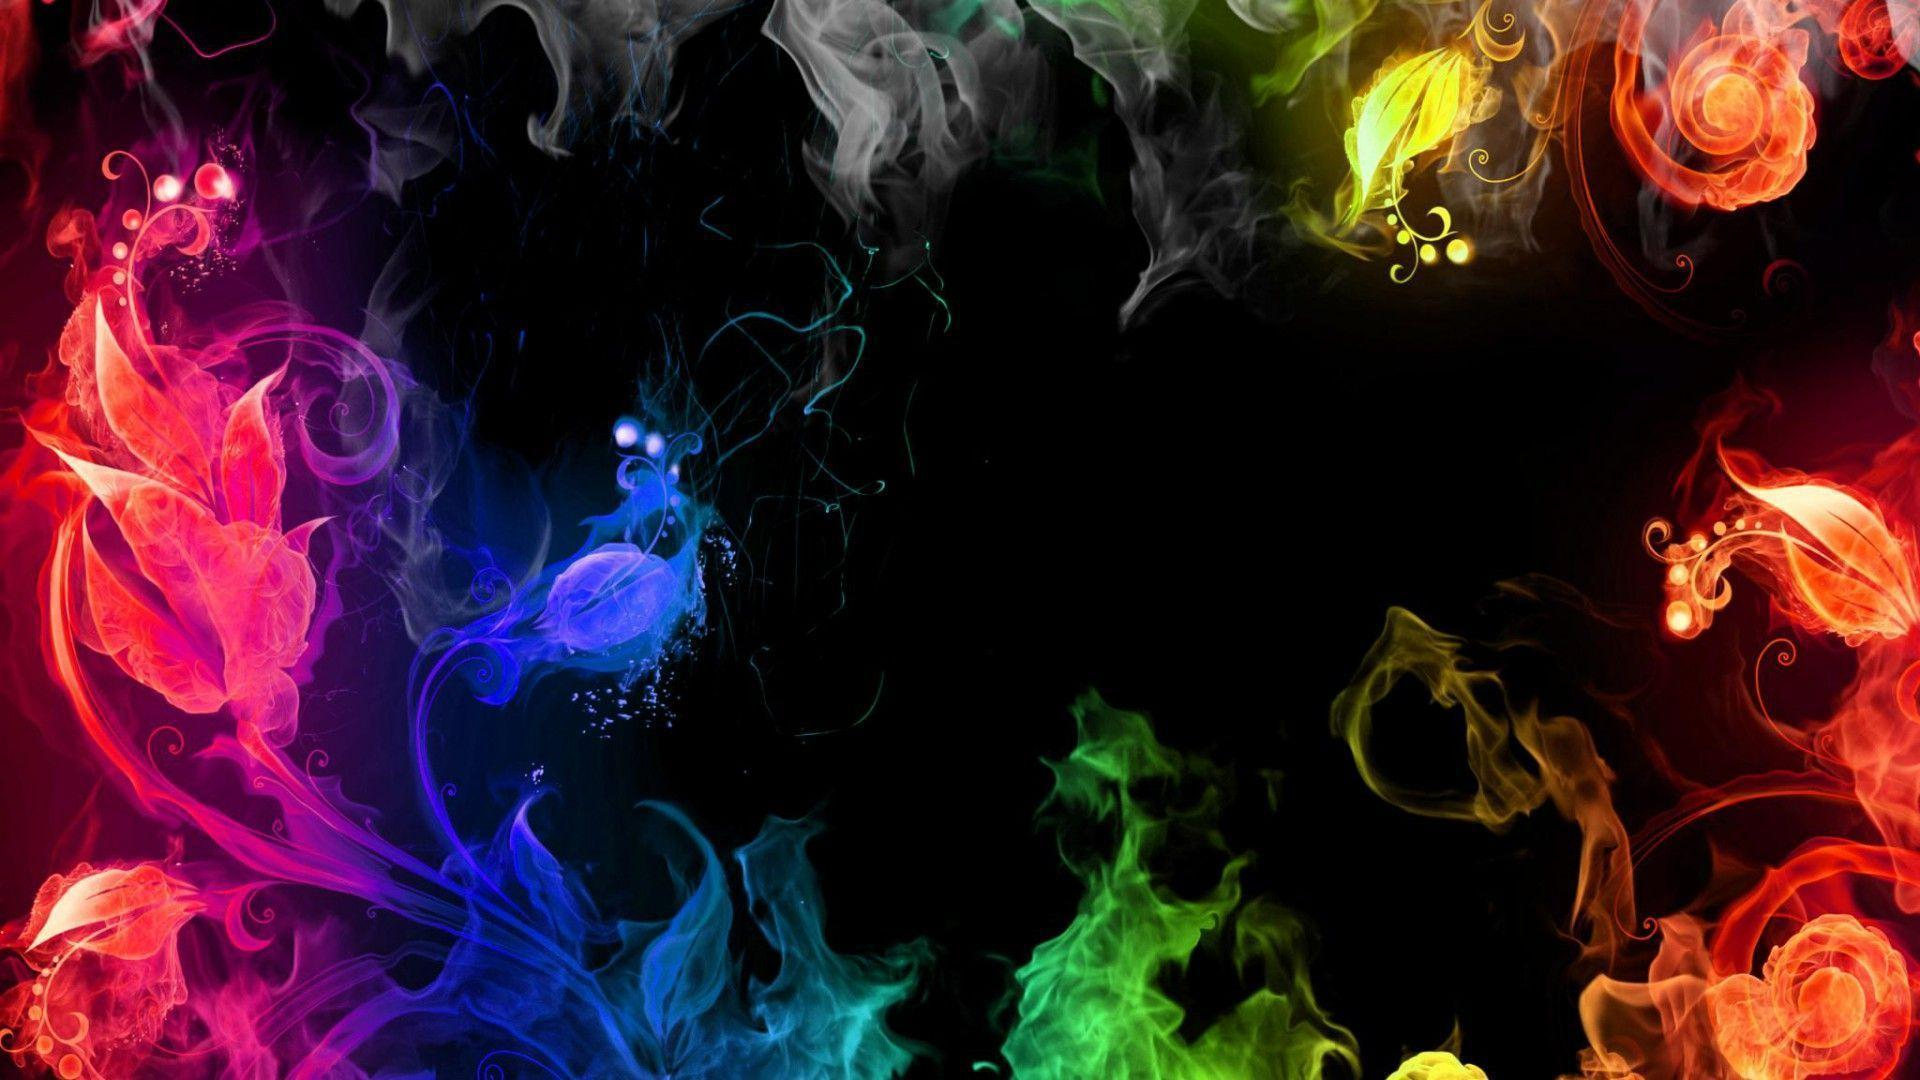 Dark Colorful 3D Desktop Background HD Wallpaper